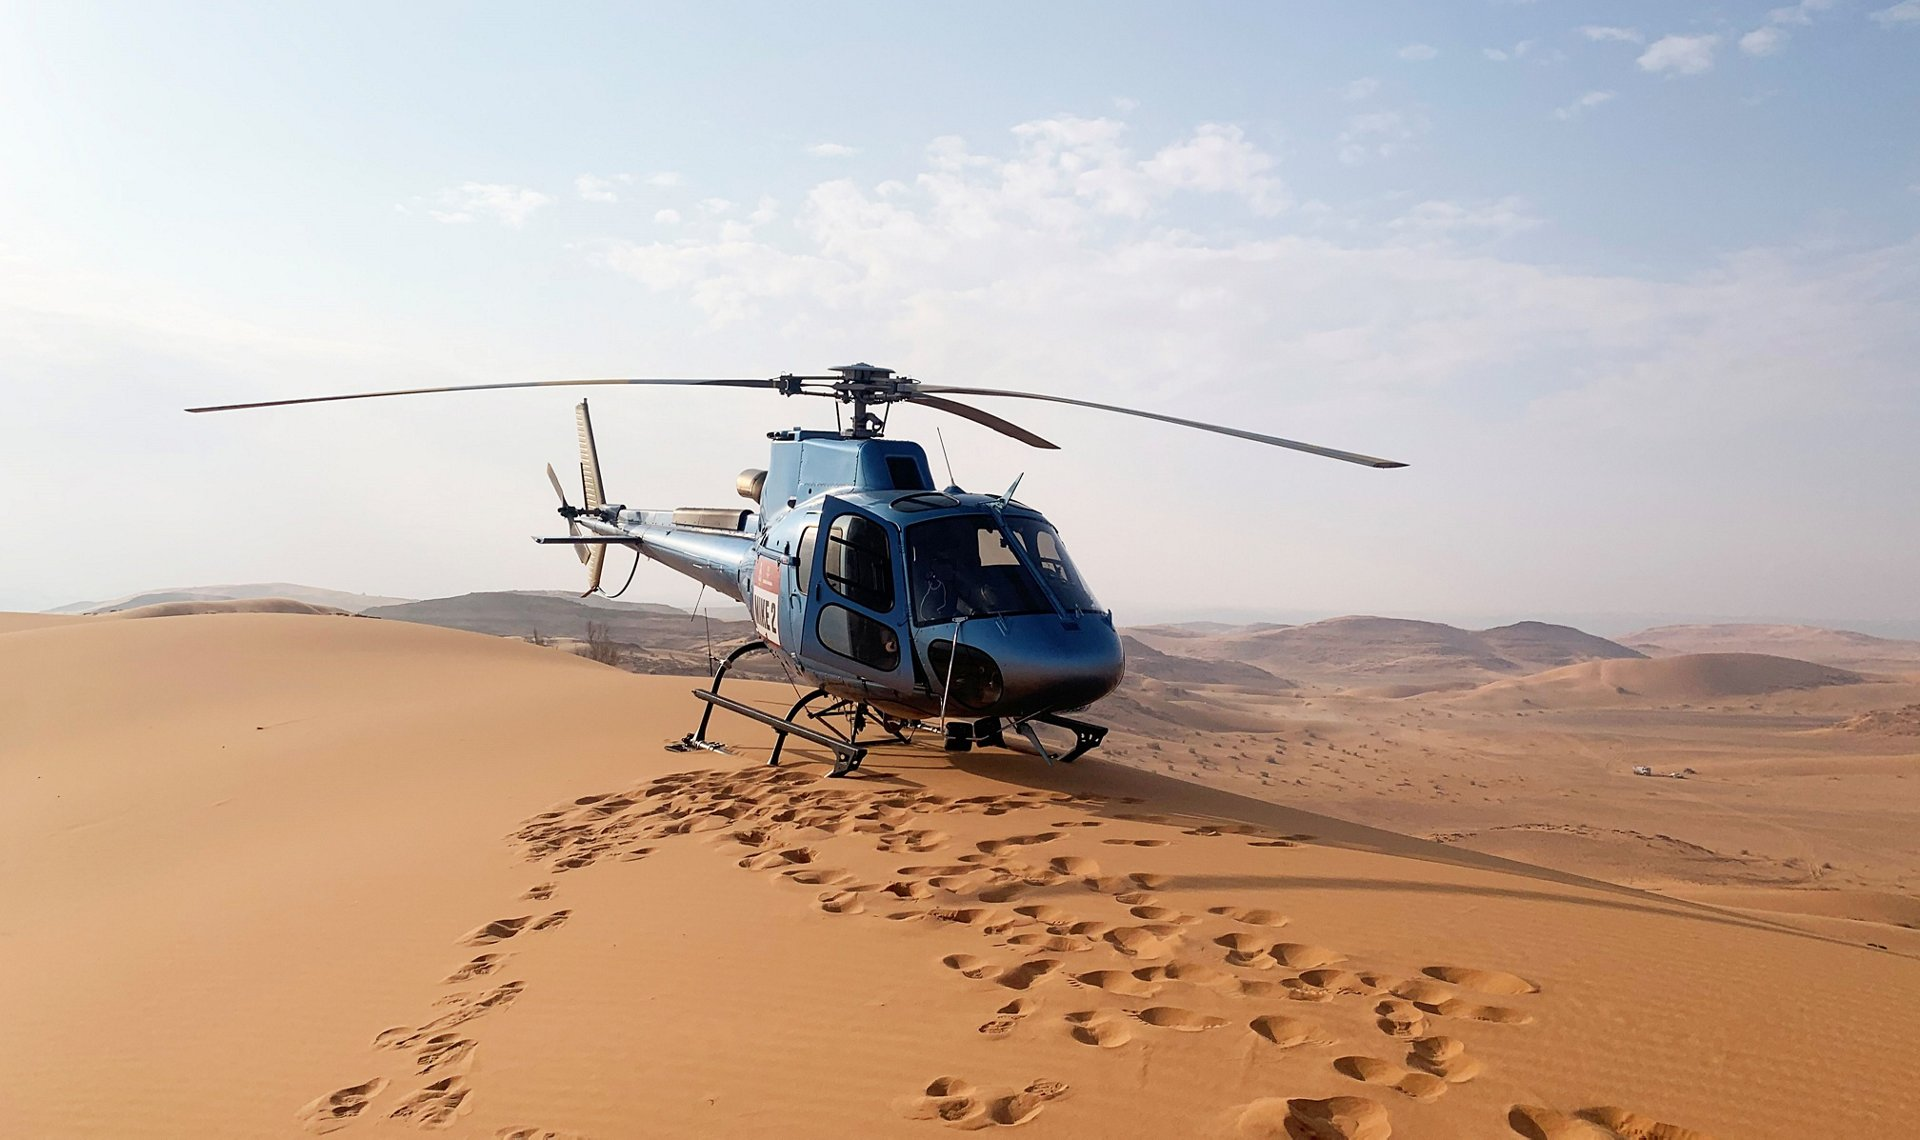 The Airbus H125 – which helped ensure safety and reliability during the 2021 Dakar Rally in Saudi Arabia – is a multi-task helicopter that can easily be reconfigured for various missions